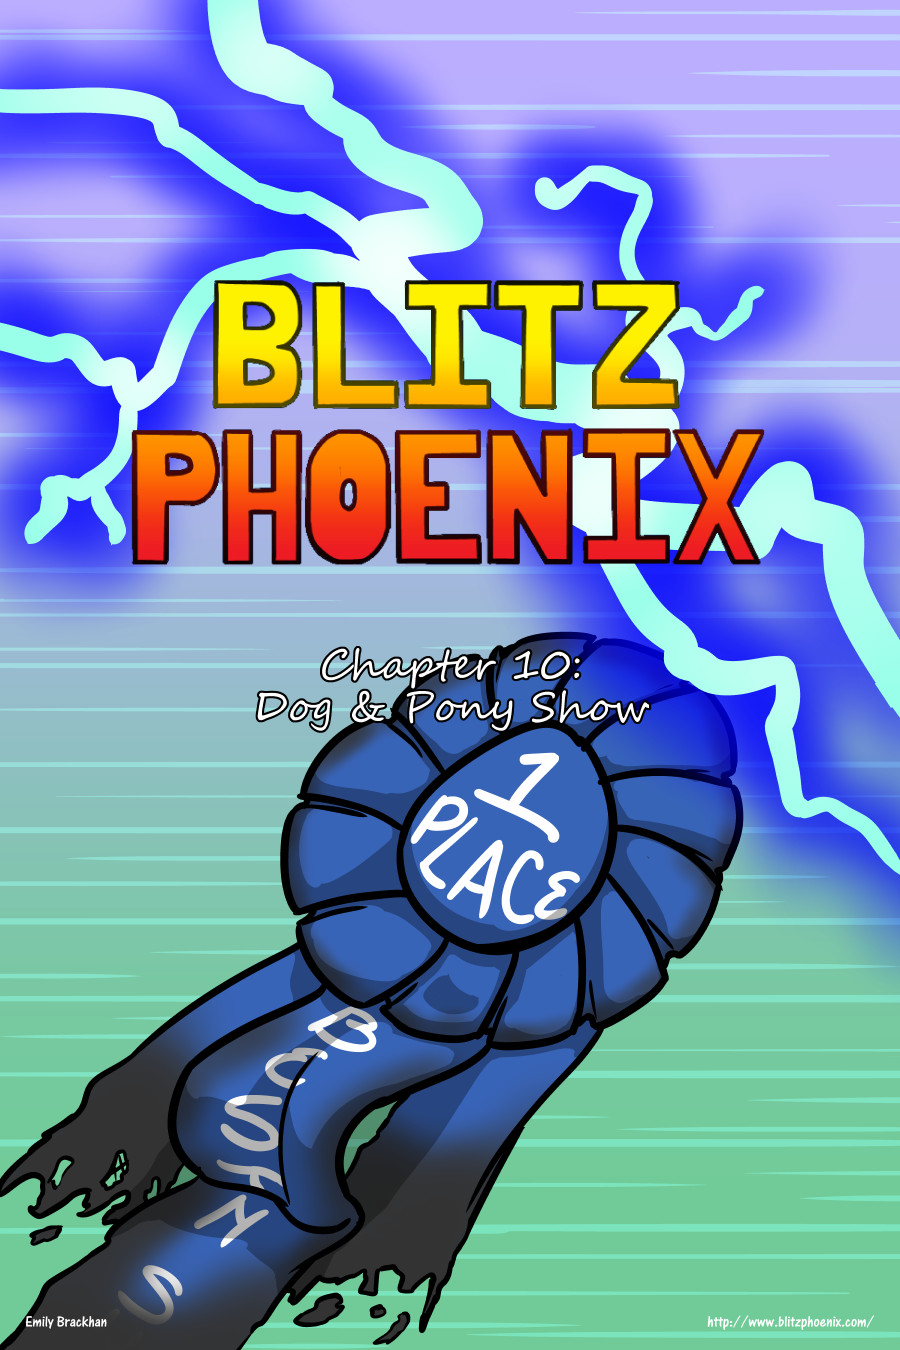 Blitz Phoenix: Chapter 10 - Dog and Pony Show